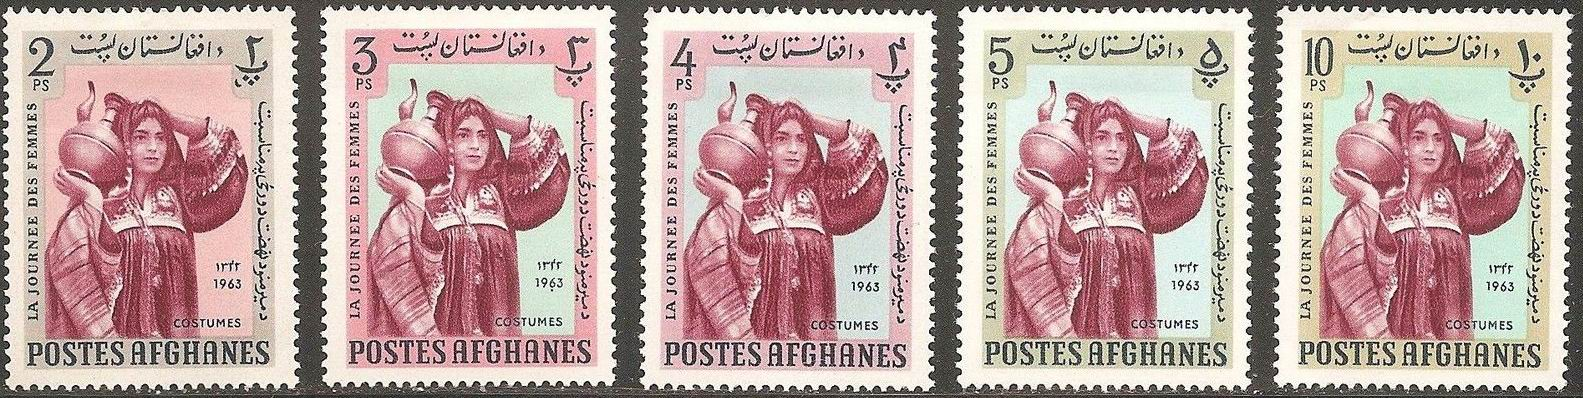 Afghanistan 1963 Stamps Afghan Women Costume